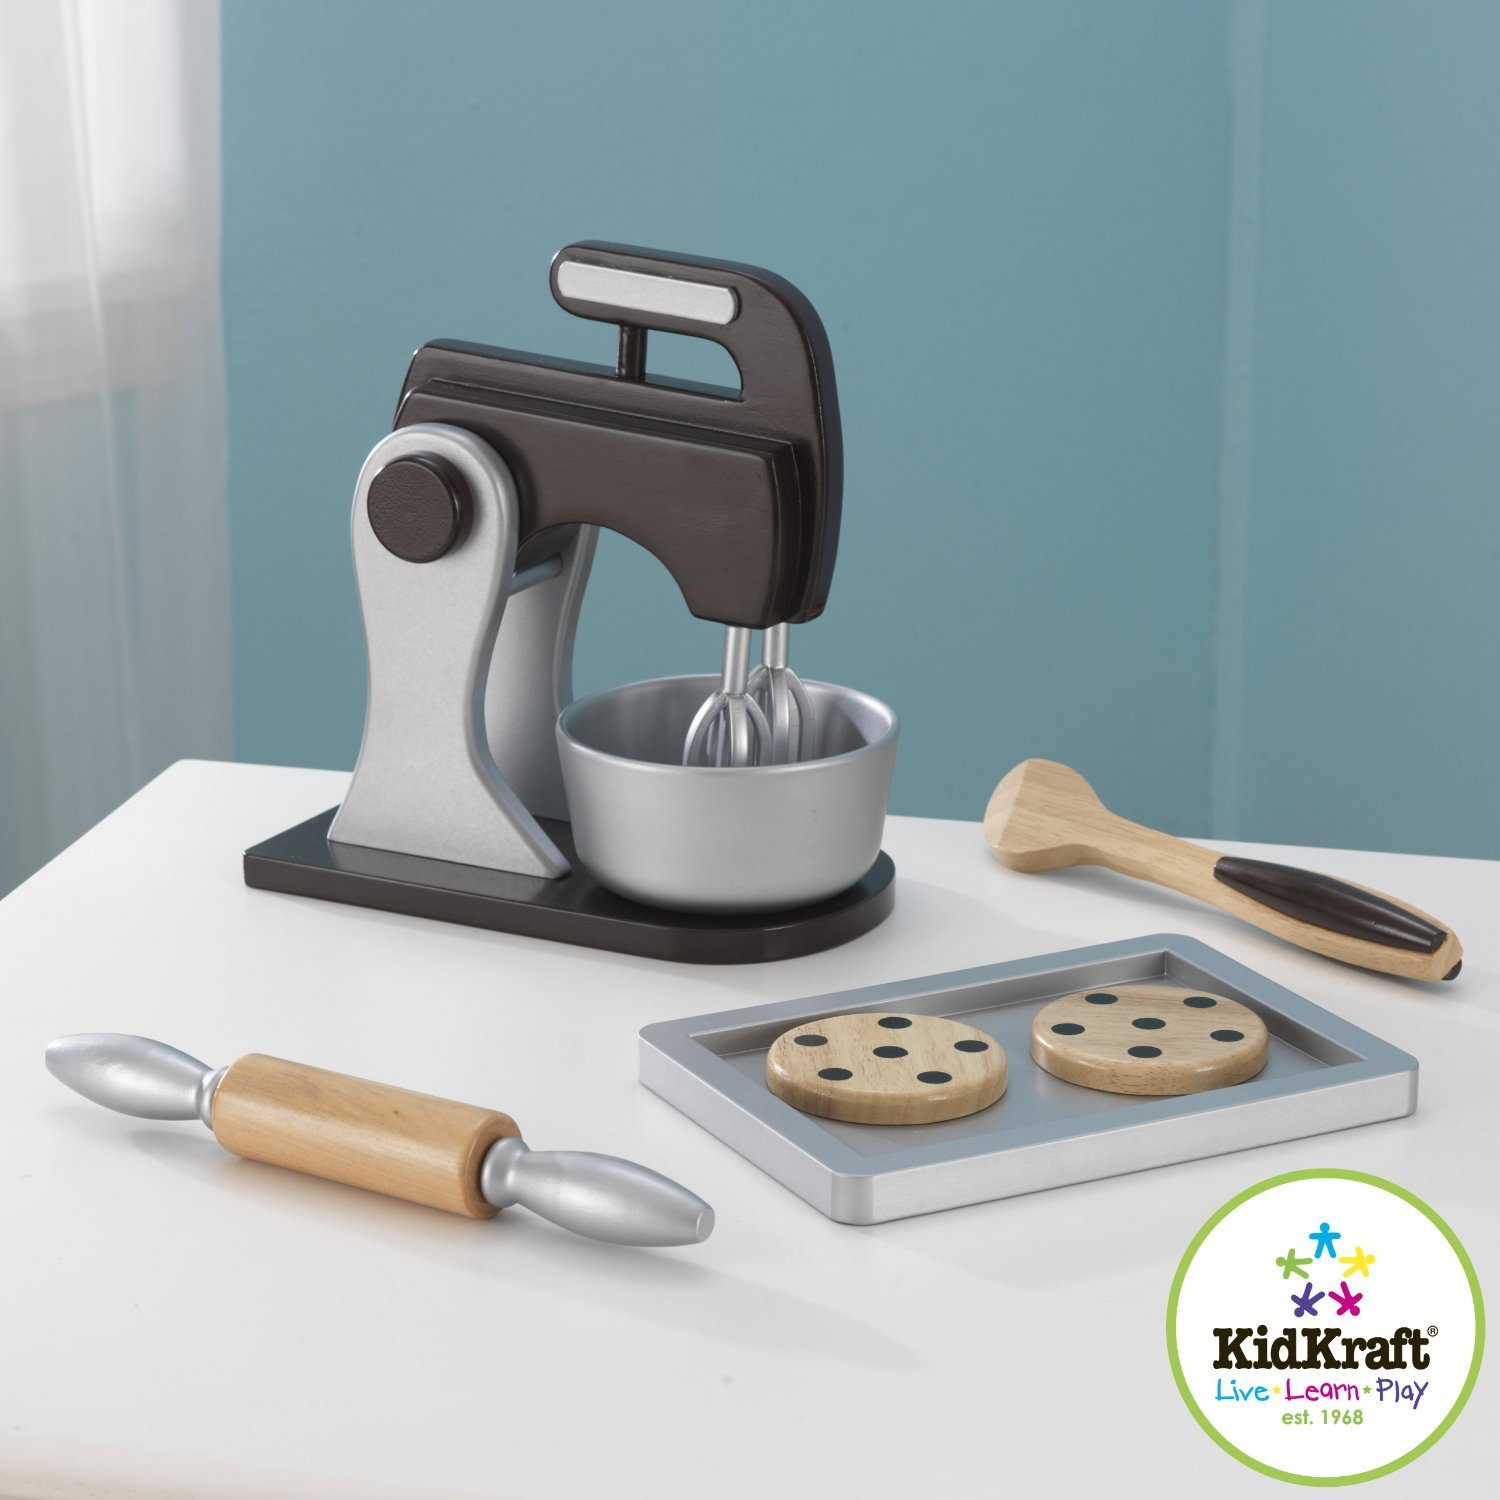 Kidkraft 2 Pack Espresso Kitchen Accessories: Amazon.co.uk: Toys & Games